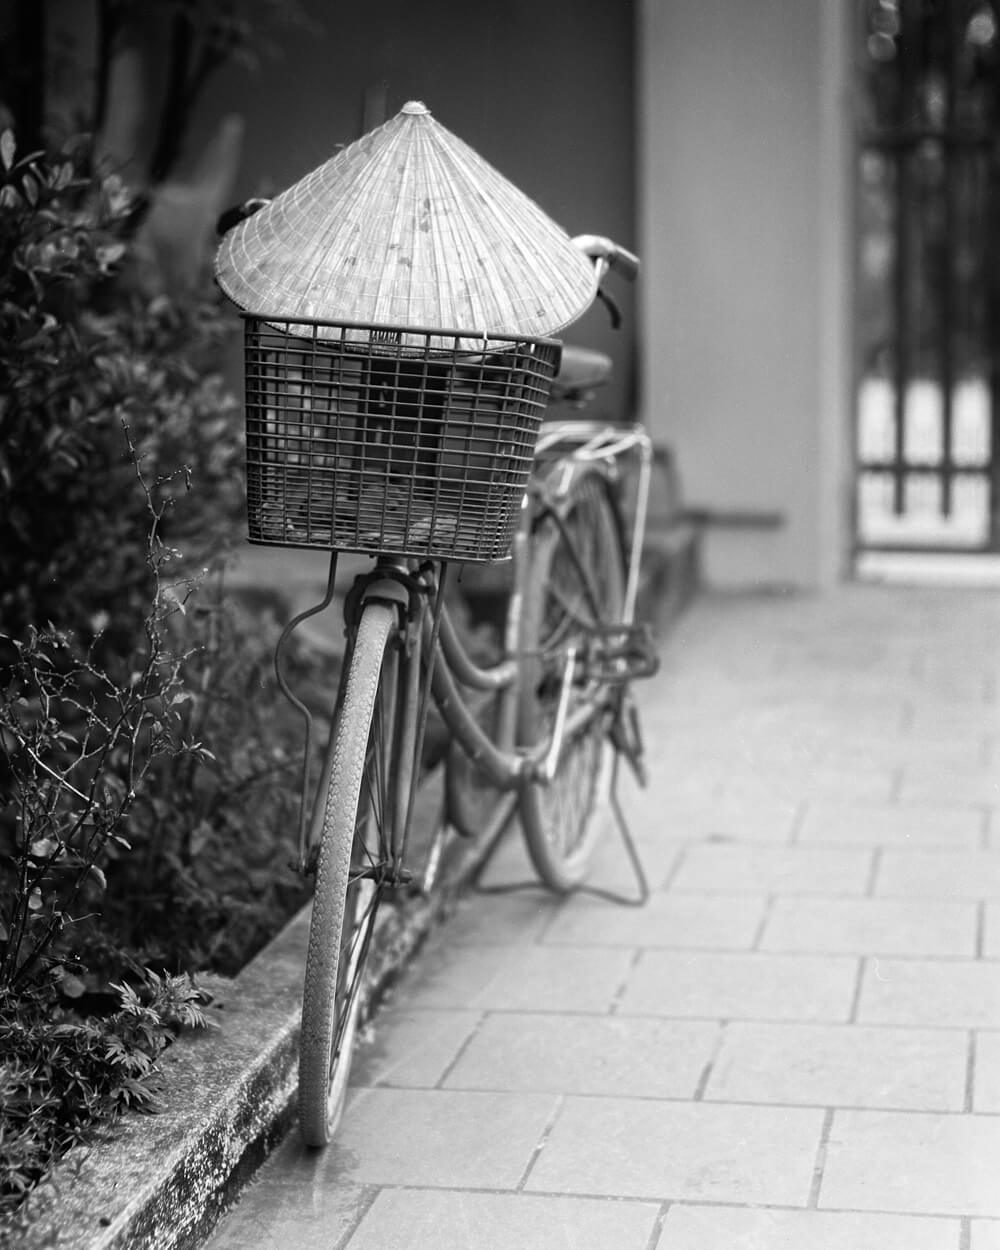 Traditional Vietnamese Hat / Bicycle - 5 Frames... Around Hai Phong, Vietnam on my 1920 Graflex RB Tele 4x5 and ILFORD HP5 PLUS (4x5 Format / EI 400 / Voigtlander Heliar 210mm f/4.5 c.1920 lens) - by Stuart Kinkade